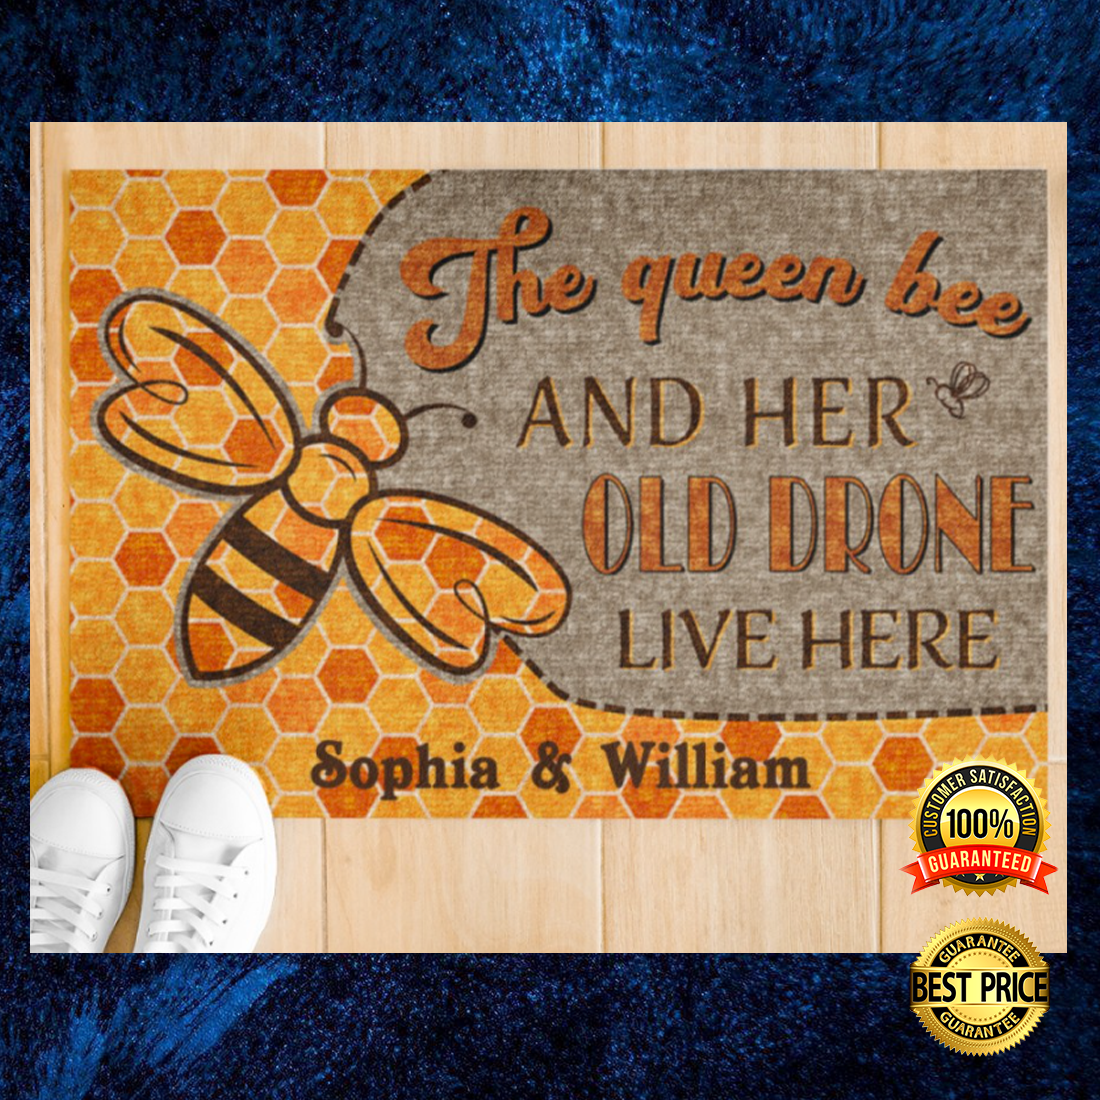 Personalized the queen bee and her old brone live here doormat 2